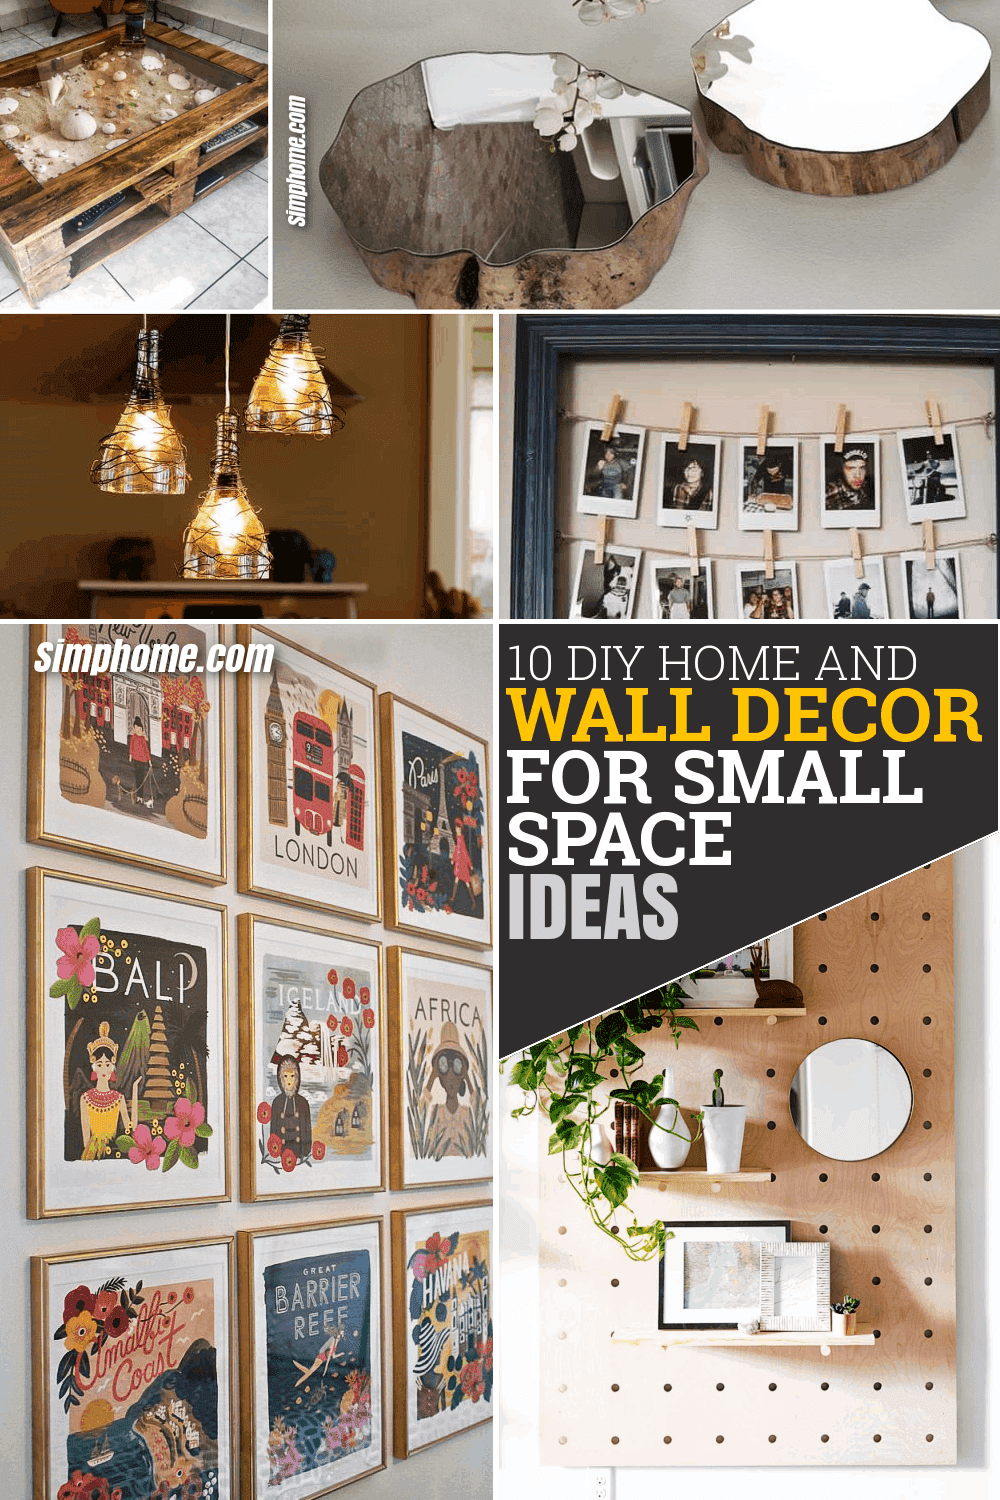 10 DIY Home and Wall Decor Small Space Ideas via Simpome.com Featured Image long